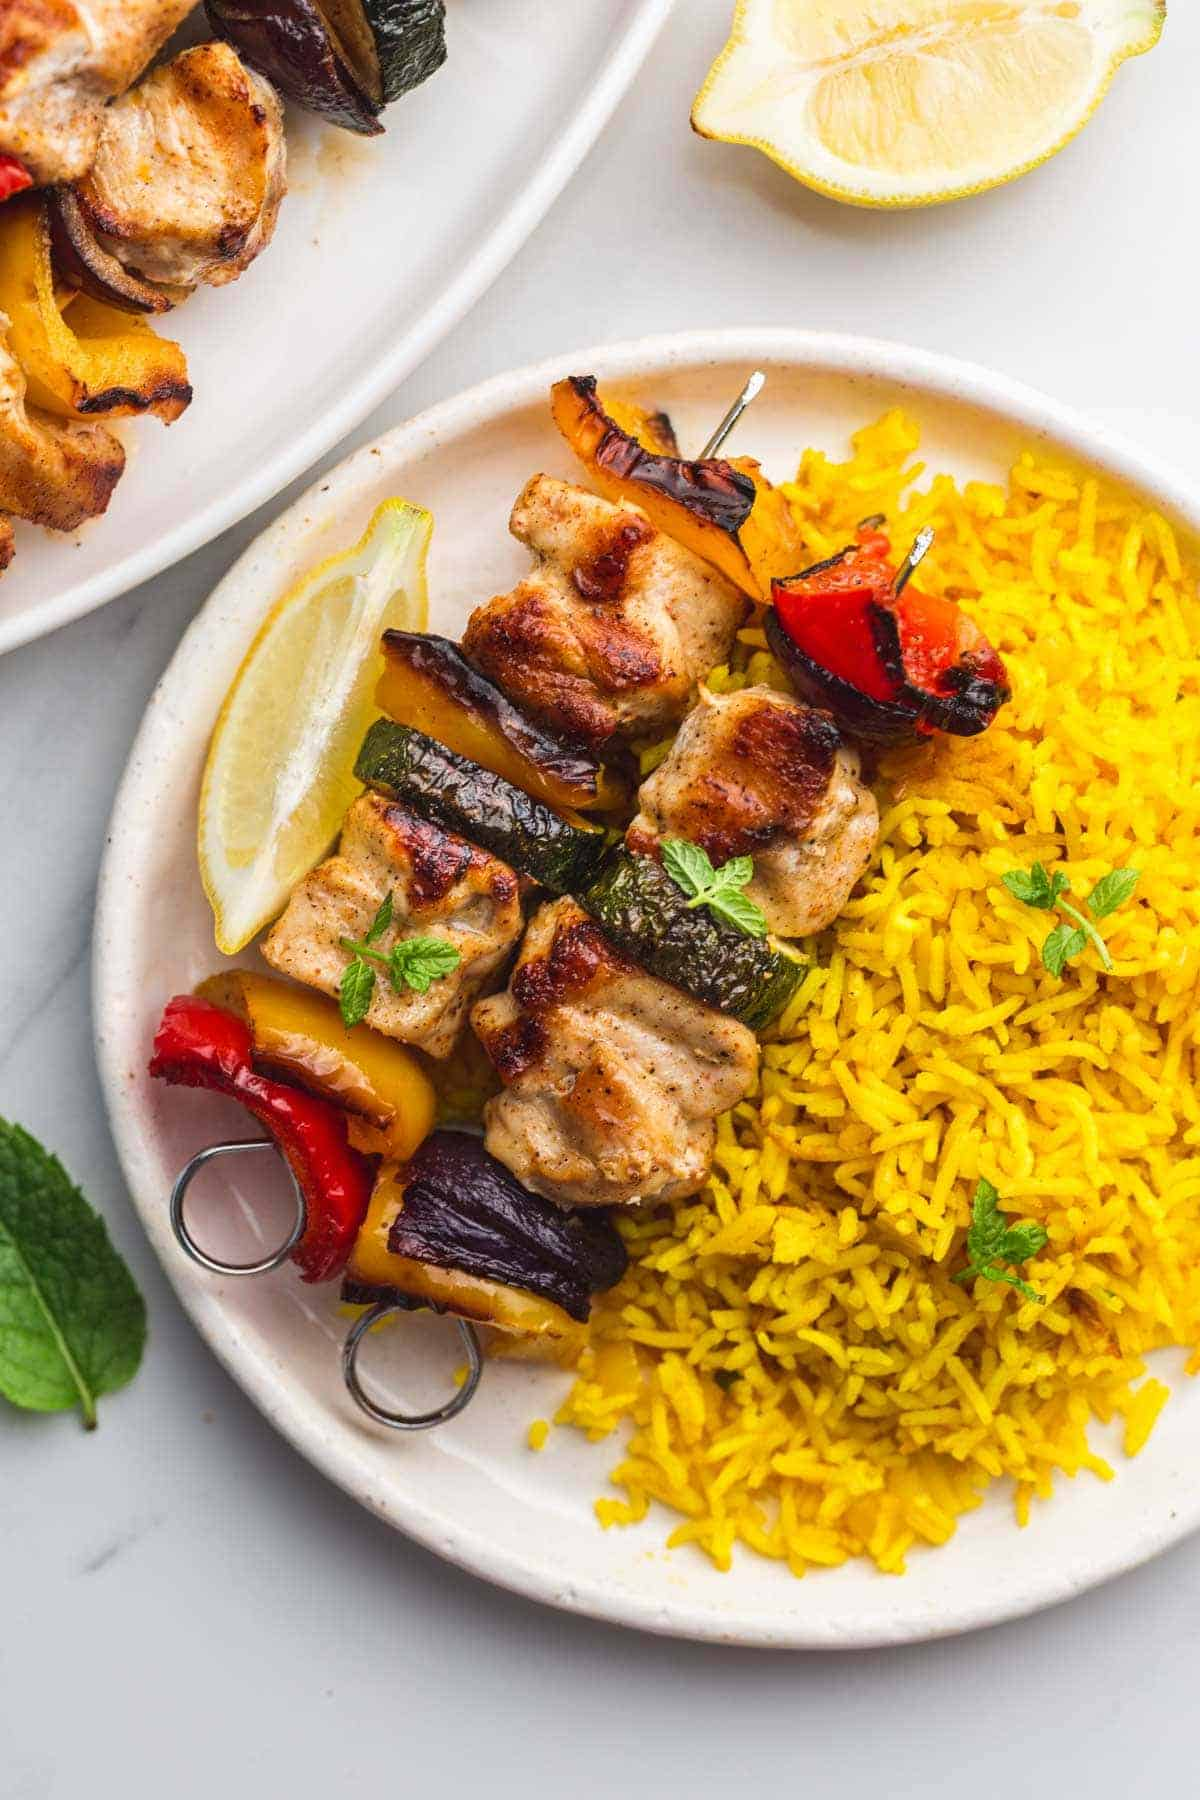 Turmeric rice with chicken kabobs